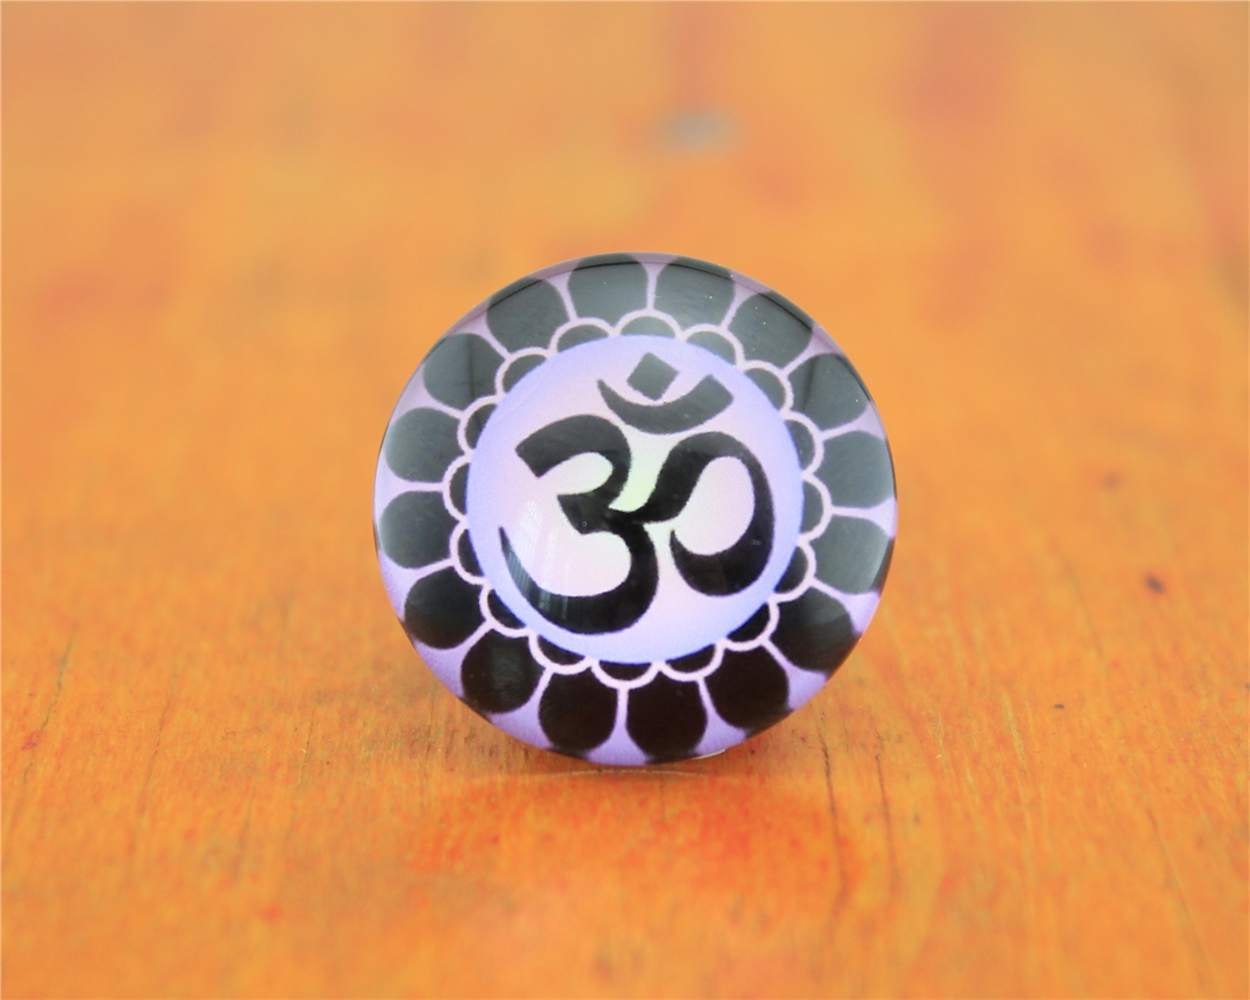 Free Shipping 2 pcs OM Yoga letters 20 25mm circular image patch manually time gem Epoxy